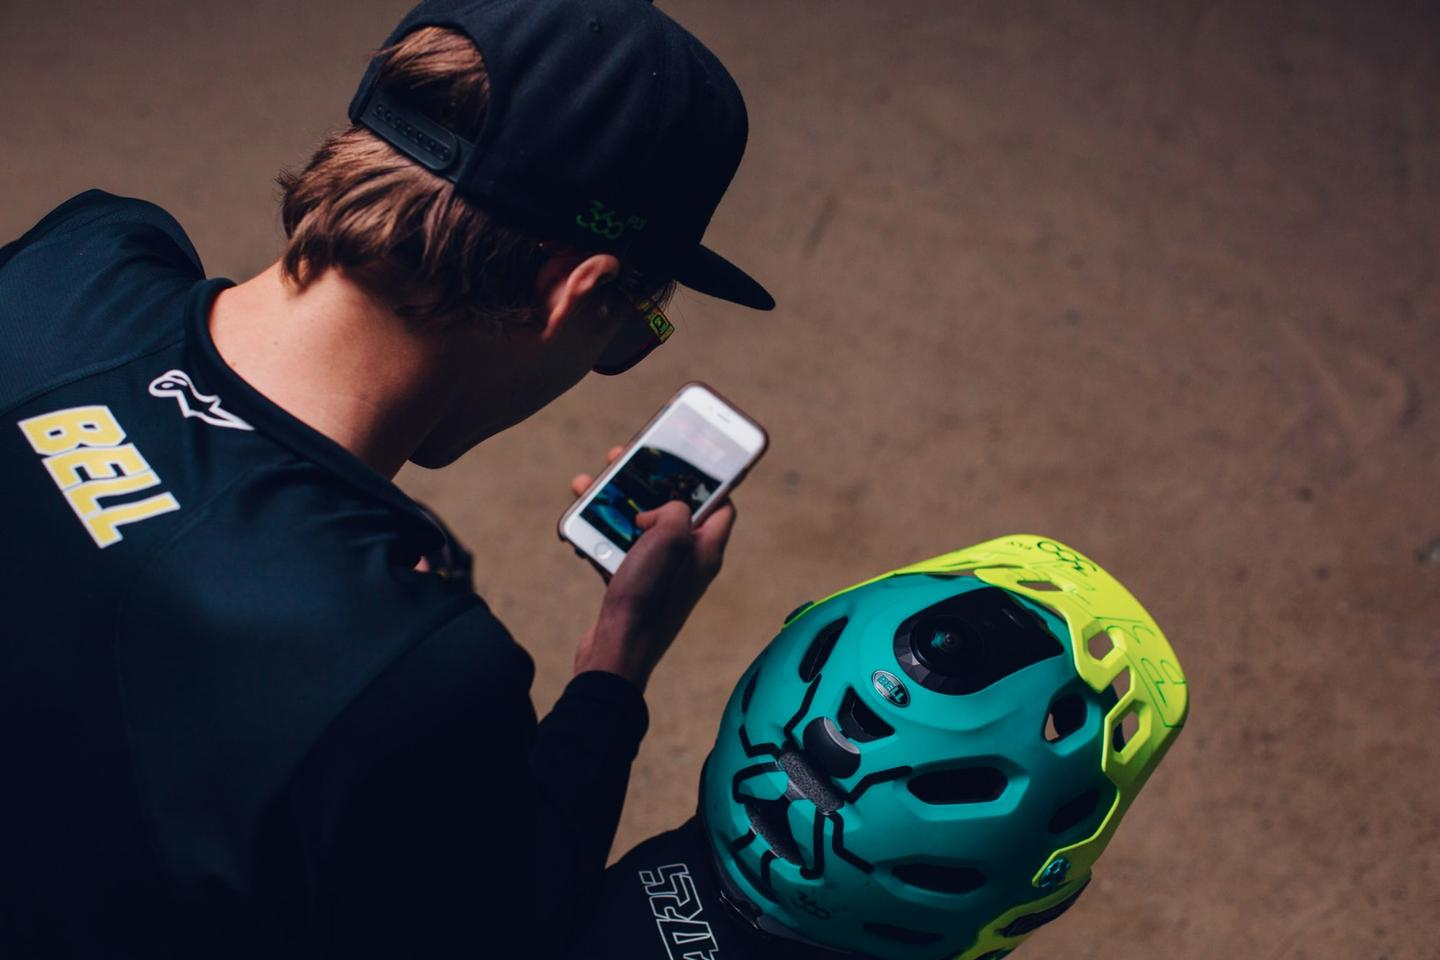 The BRG Sports Bell Moto 9 off road motorcycle helmet with integrated 360fly camera and mobile app